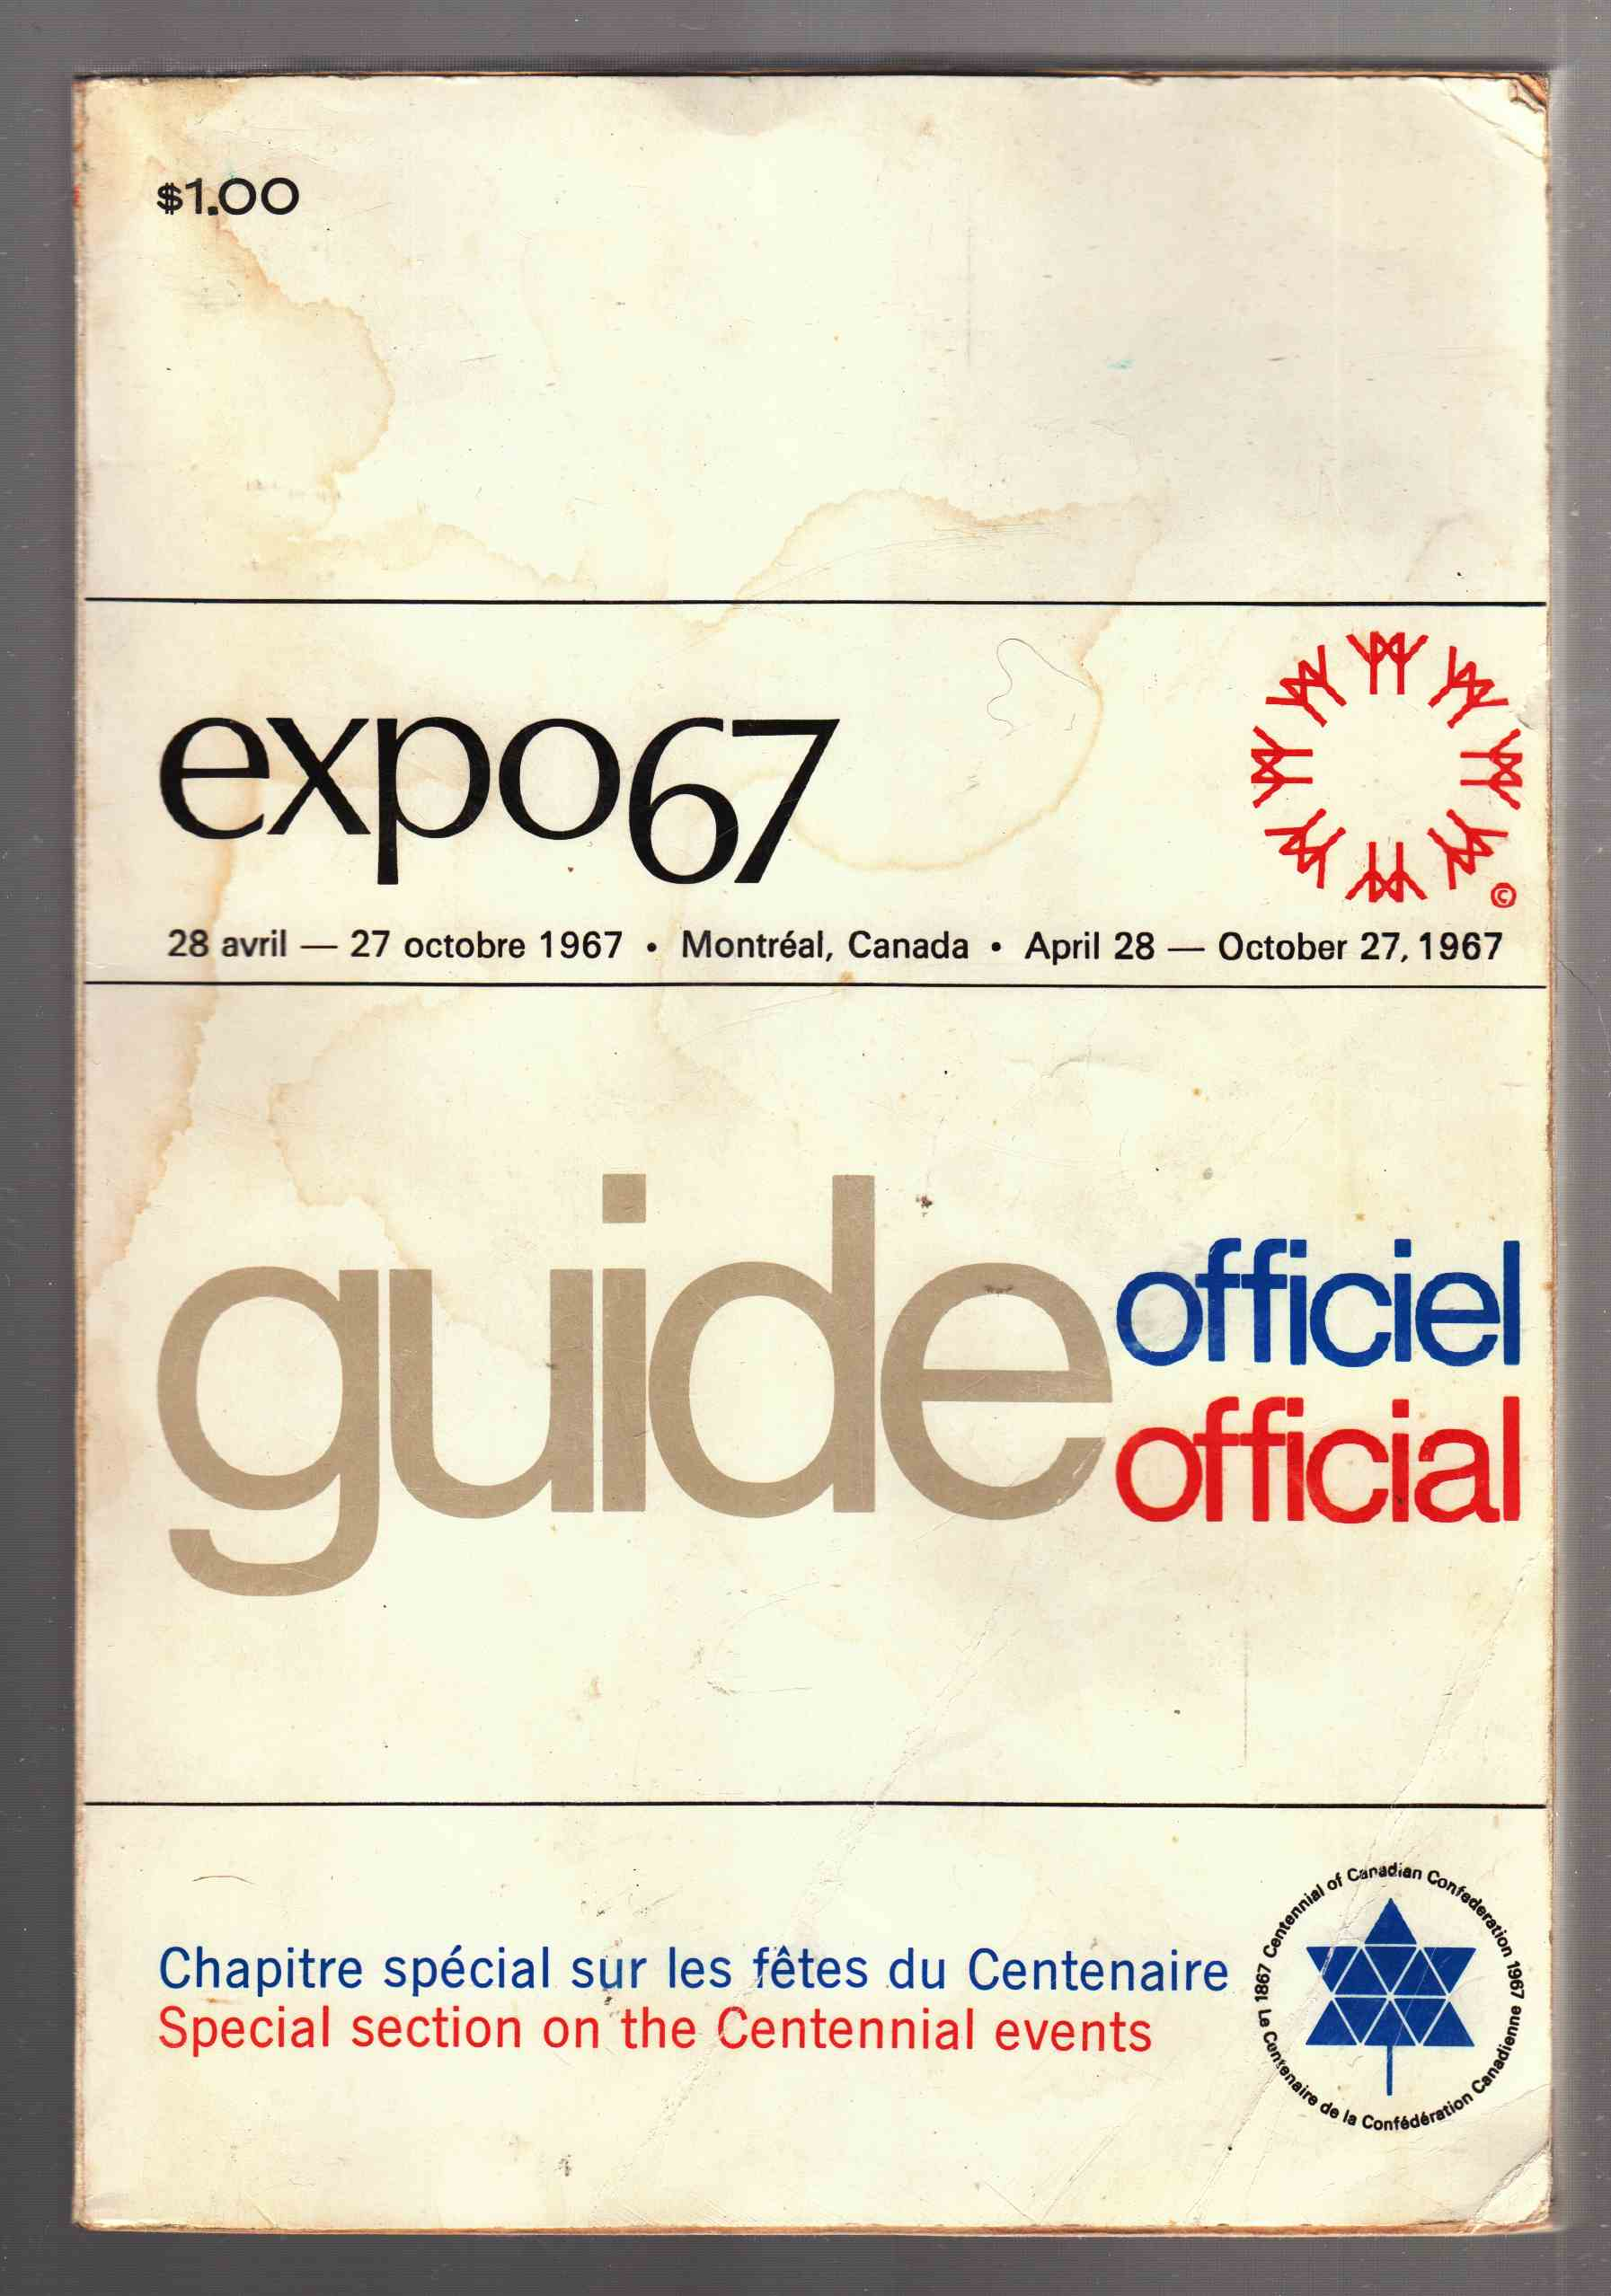 Image for Expo 67 Official Guide Officiel